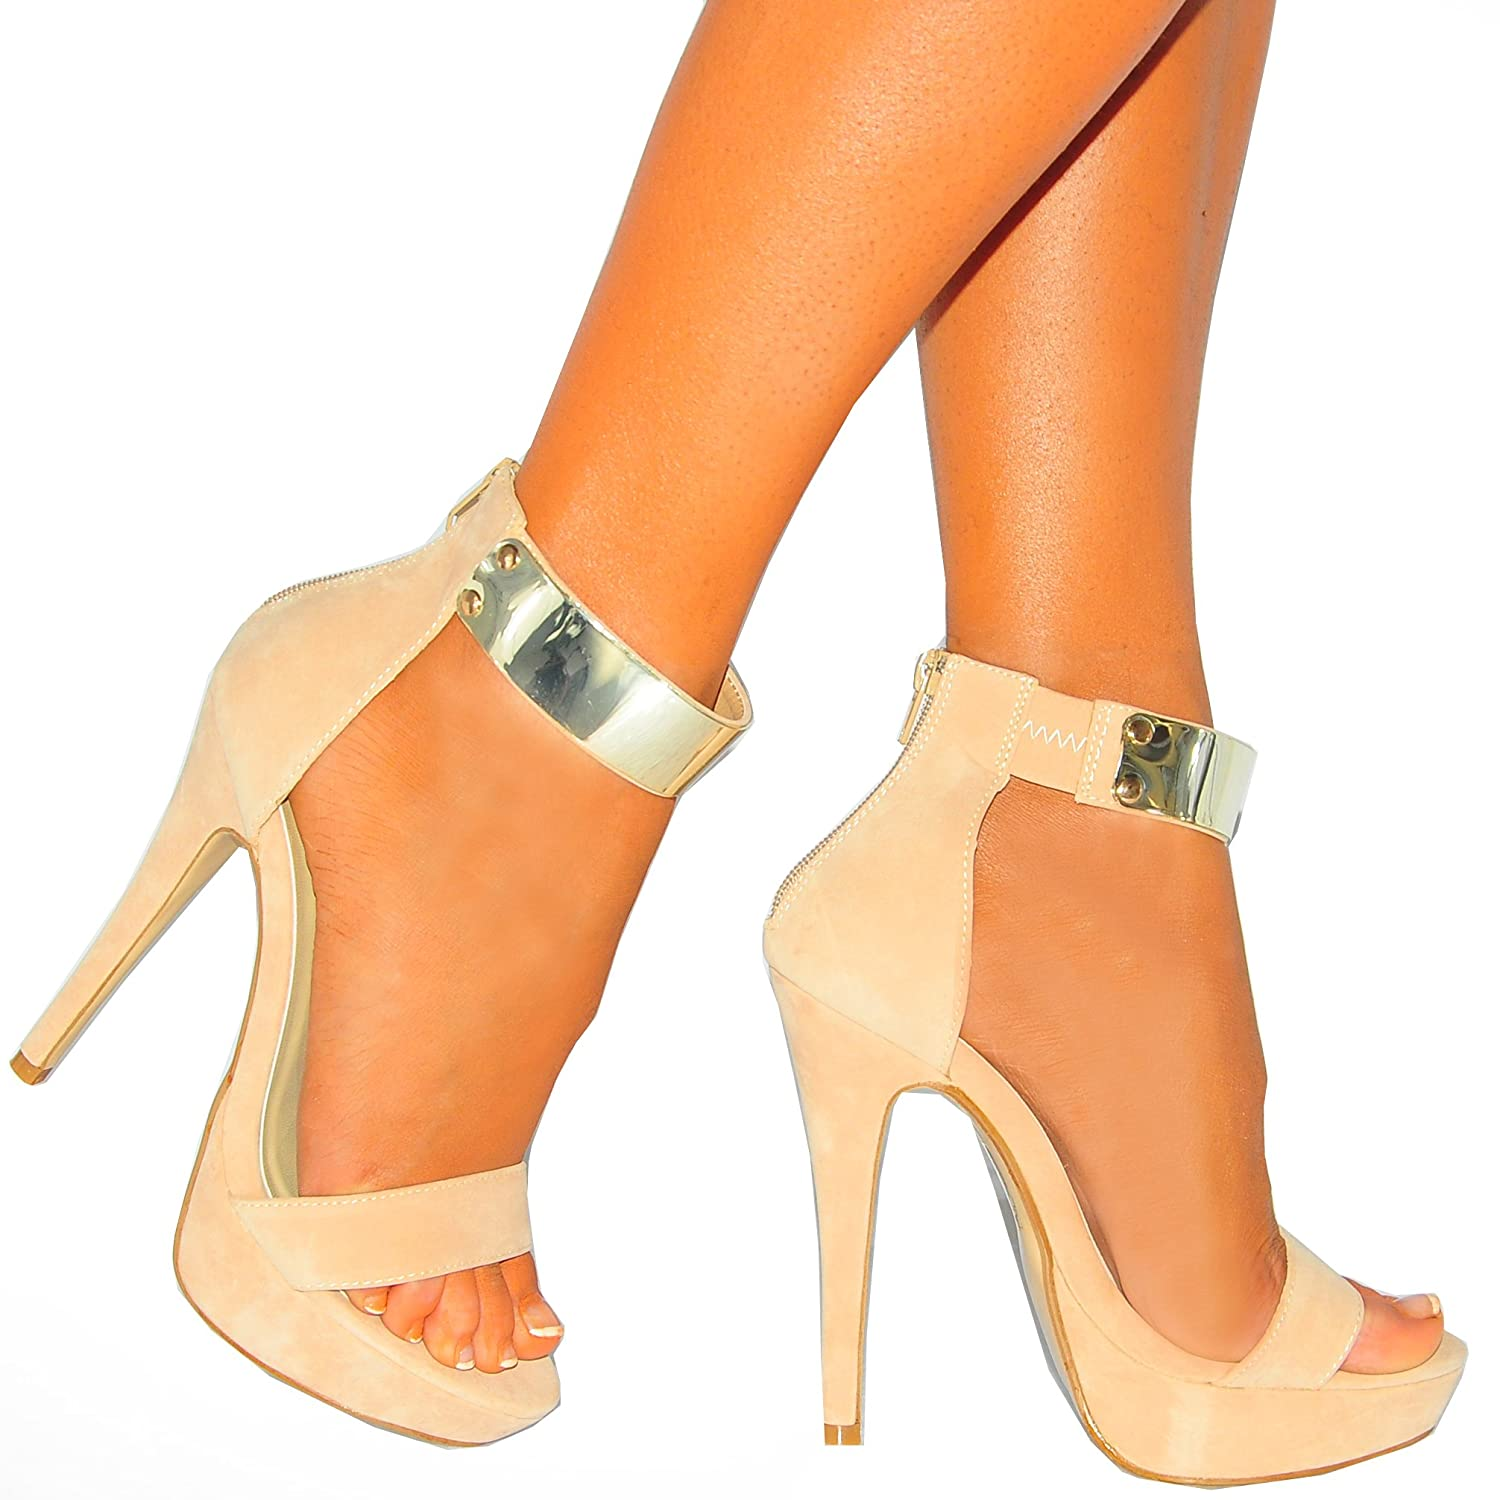 70dd3a48c42 Ladies Women s Nude Gold Metal Ankle Cuff Strap Peep Toes Stiletto High  Heels Shoes 3-8 (UK8 EURO41)  Amazon.co.uk  Shoes   Bags